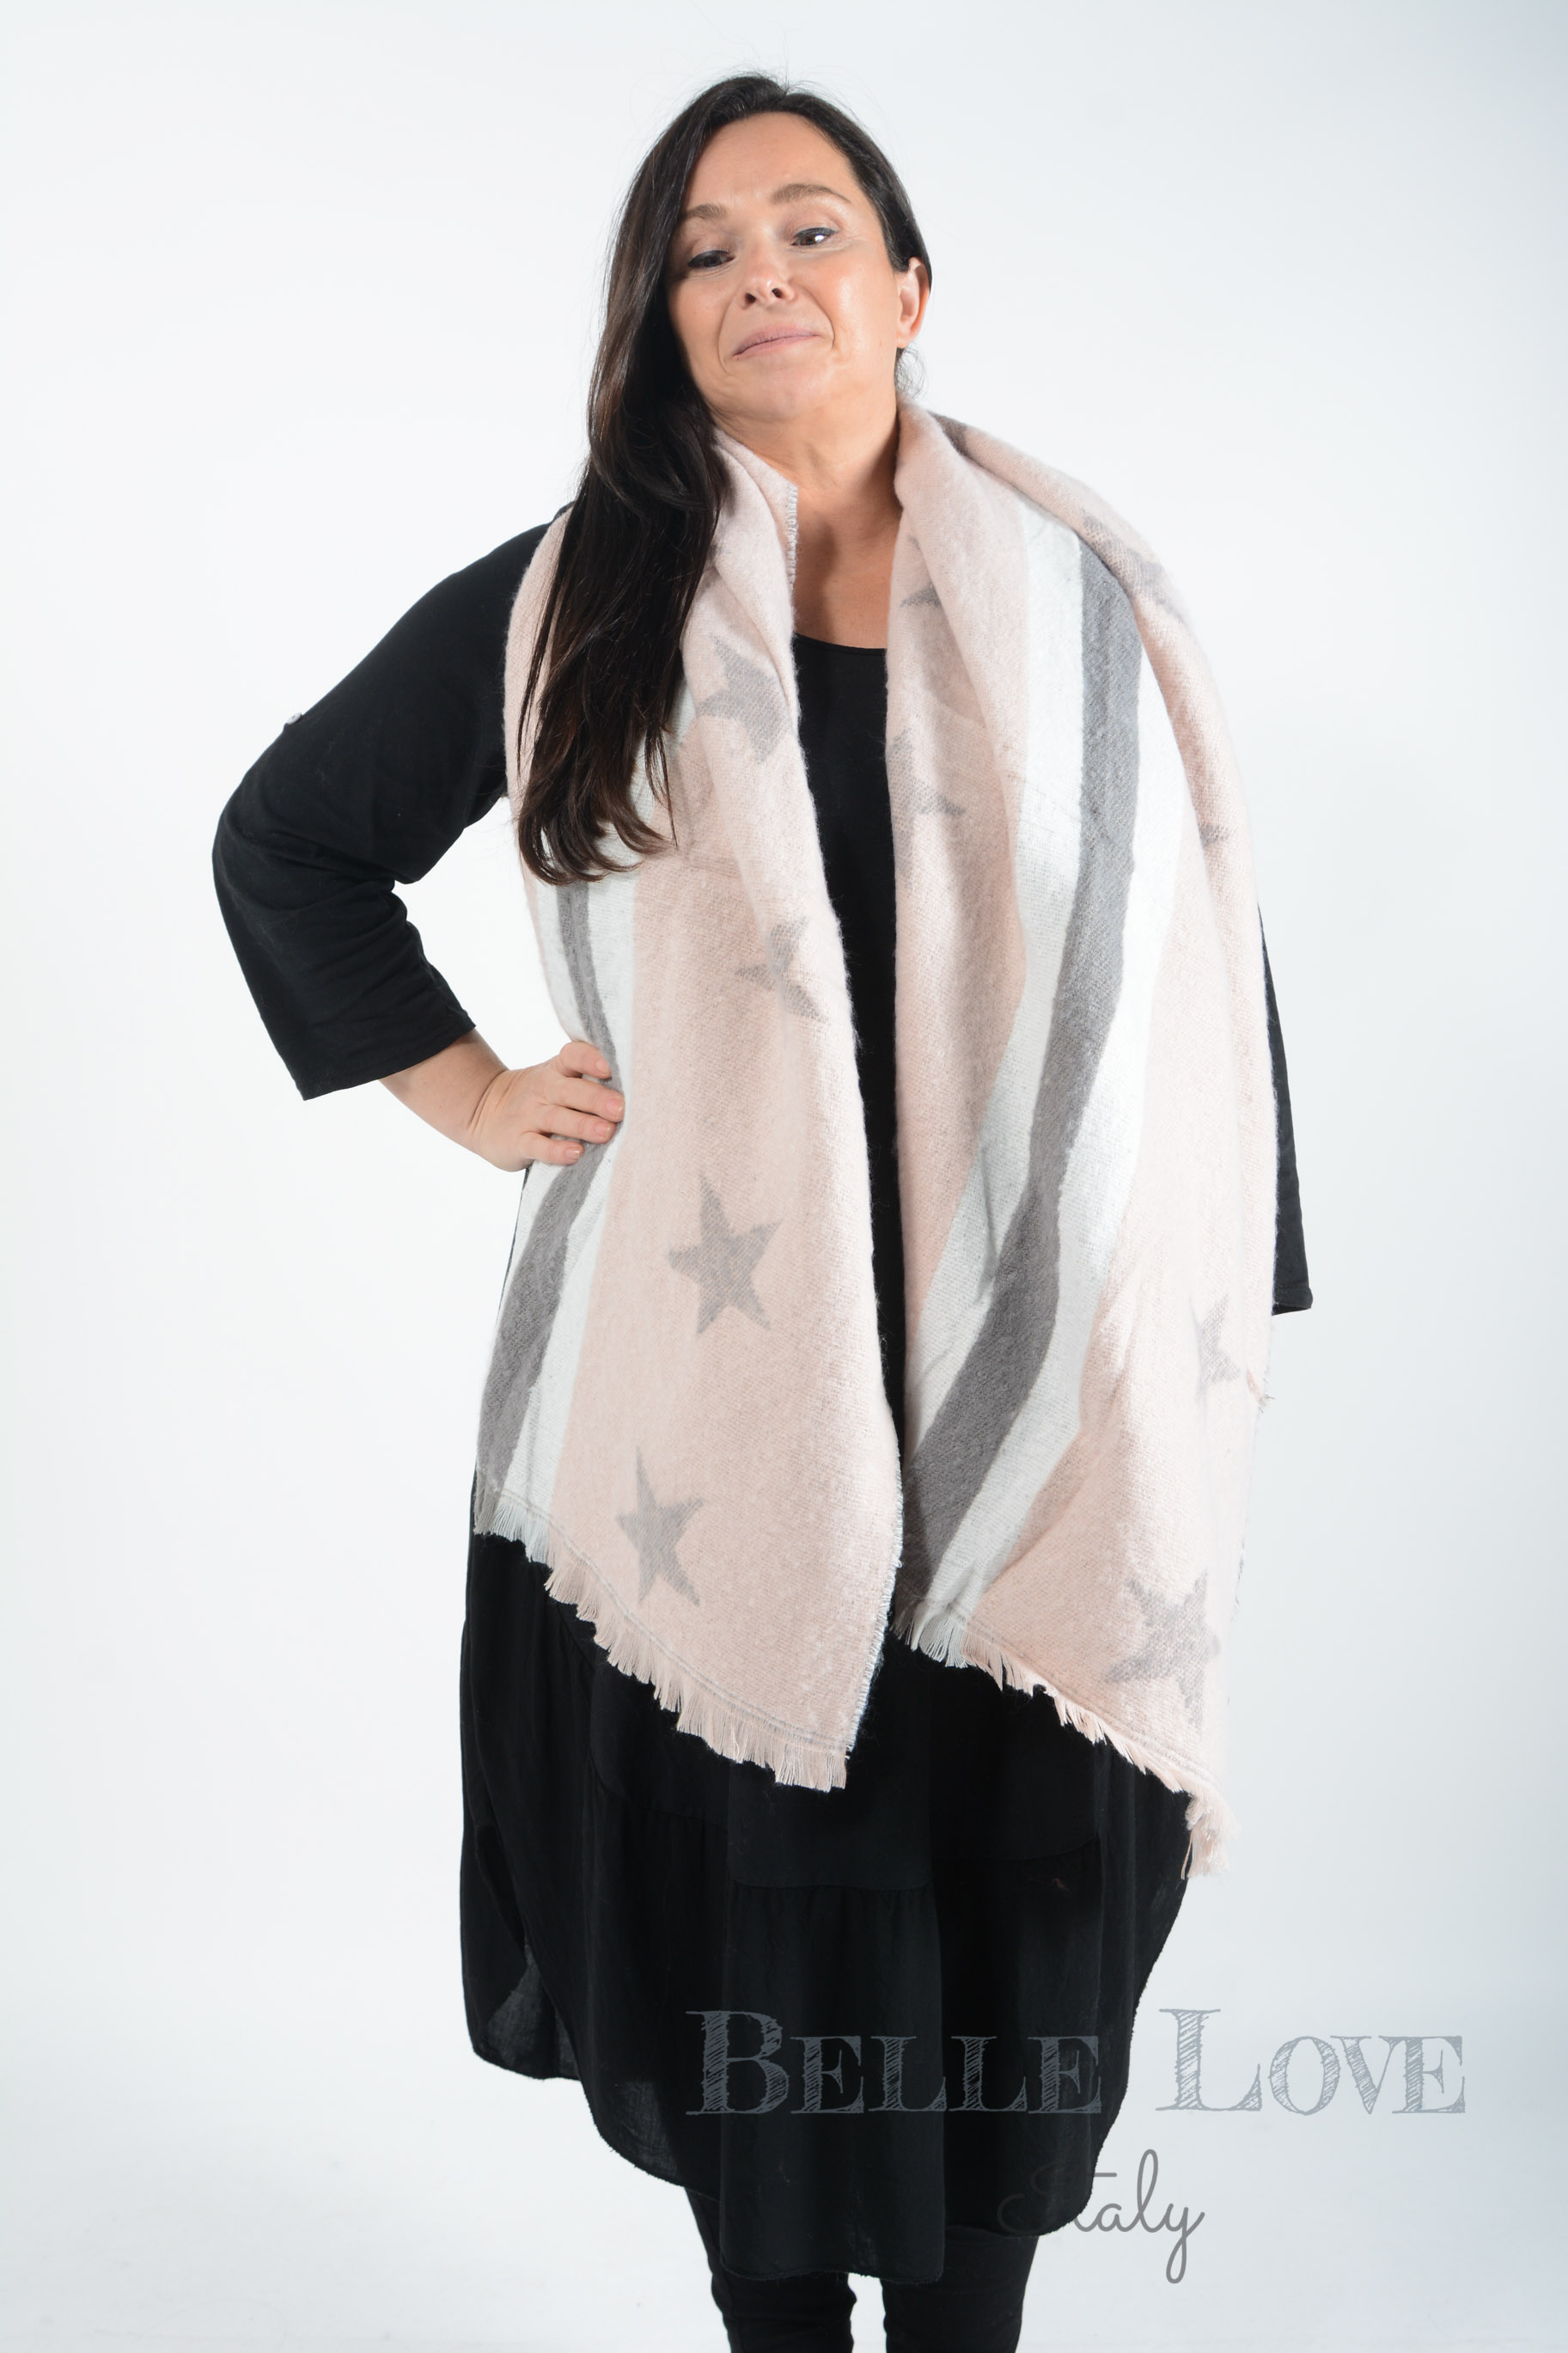 Belle Love Italy Aubrey Stars And Stripes Scarf